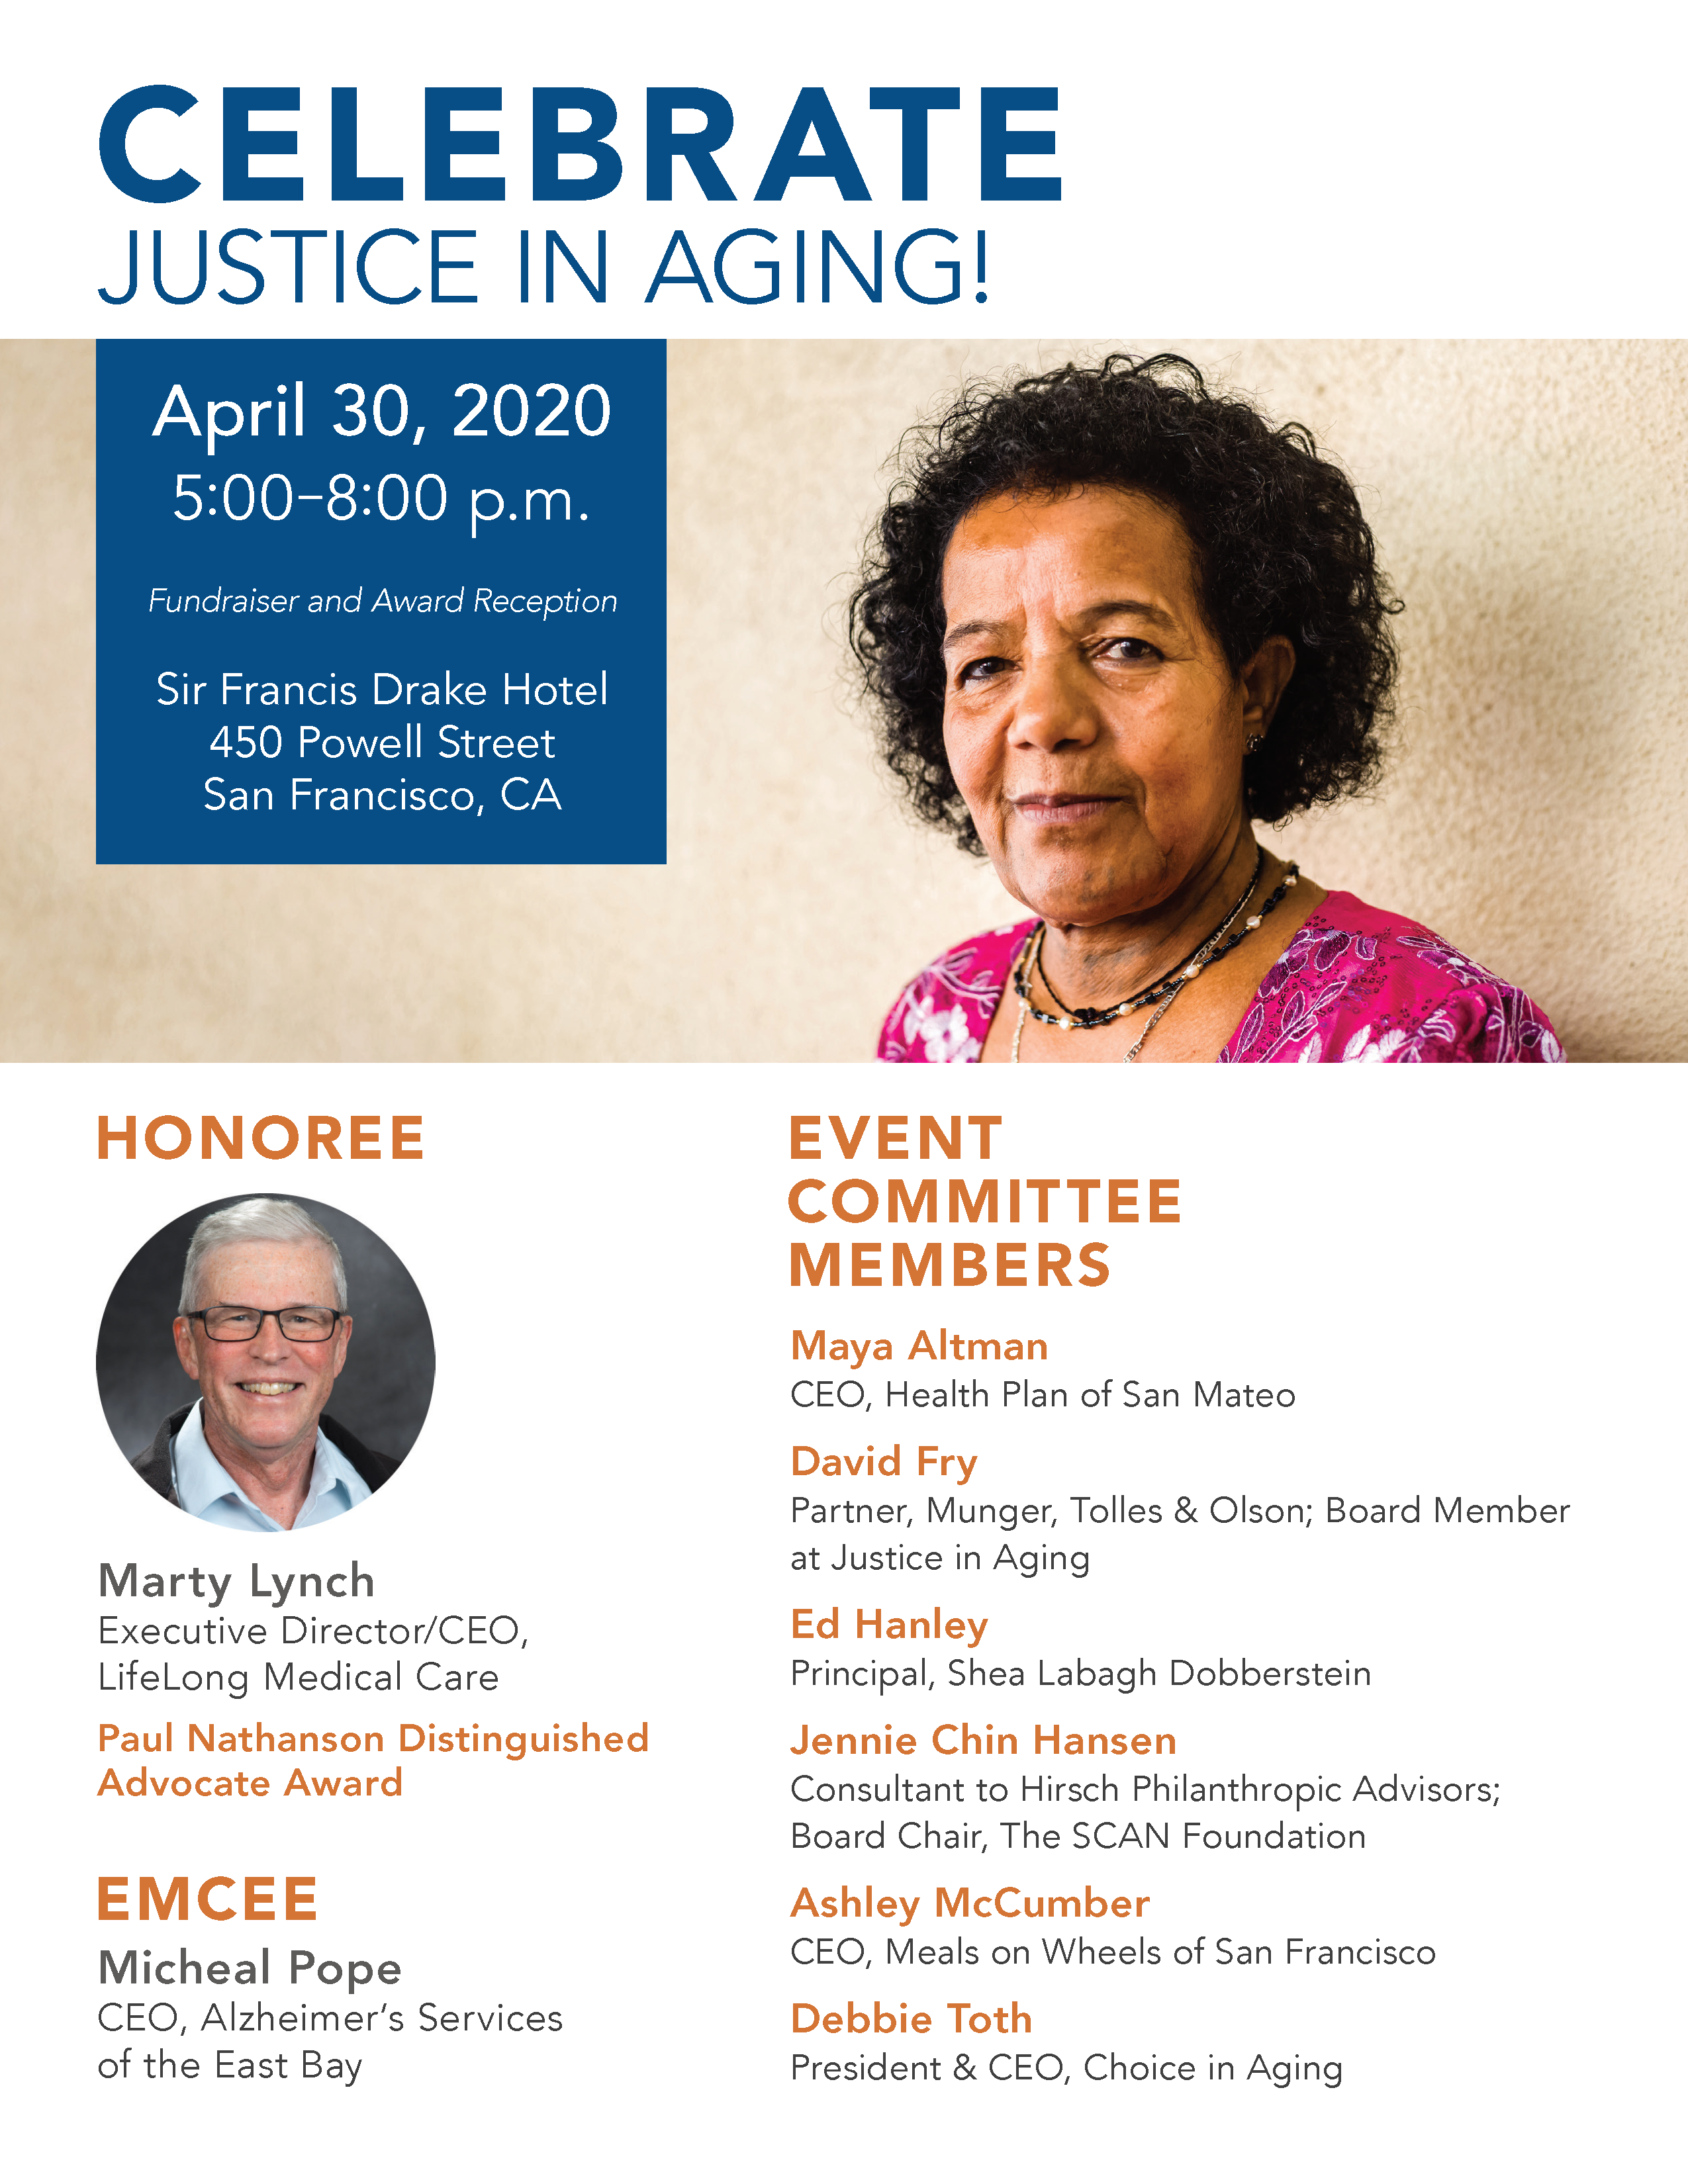 Celebrate Justice in Aging on April 30, 2020 at the Sir Francis Drake Hotel